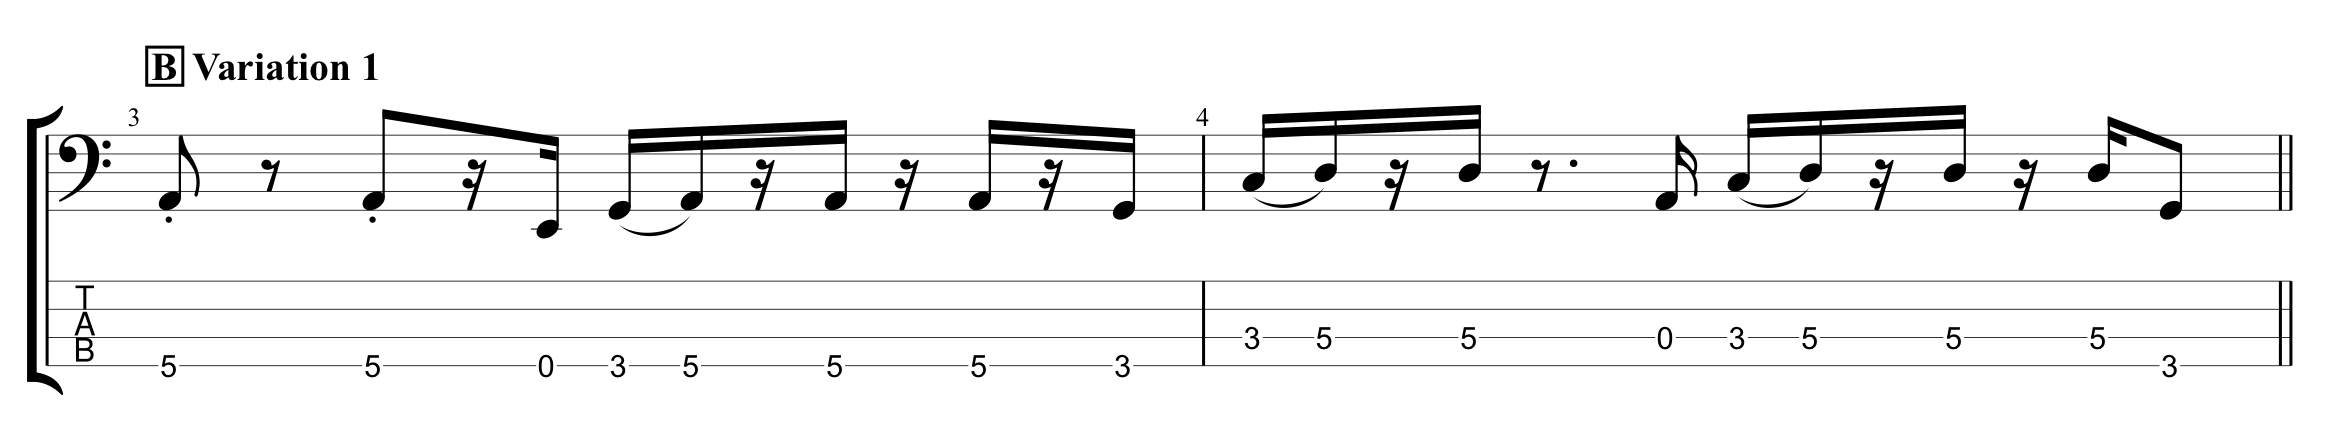 First Rhythmic Variation